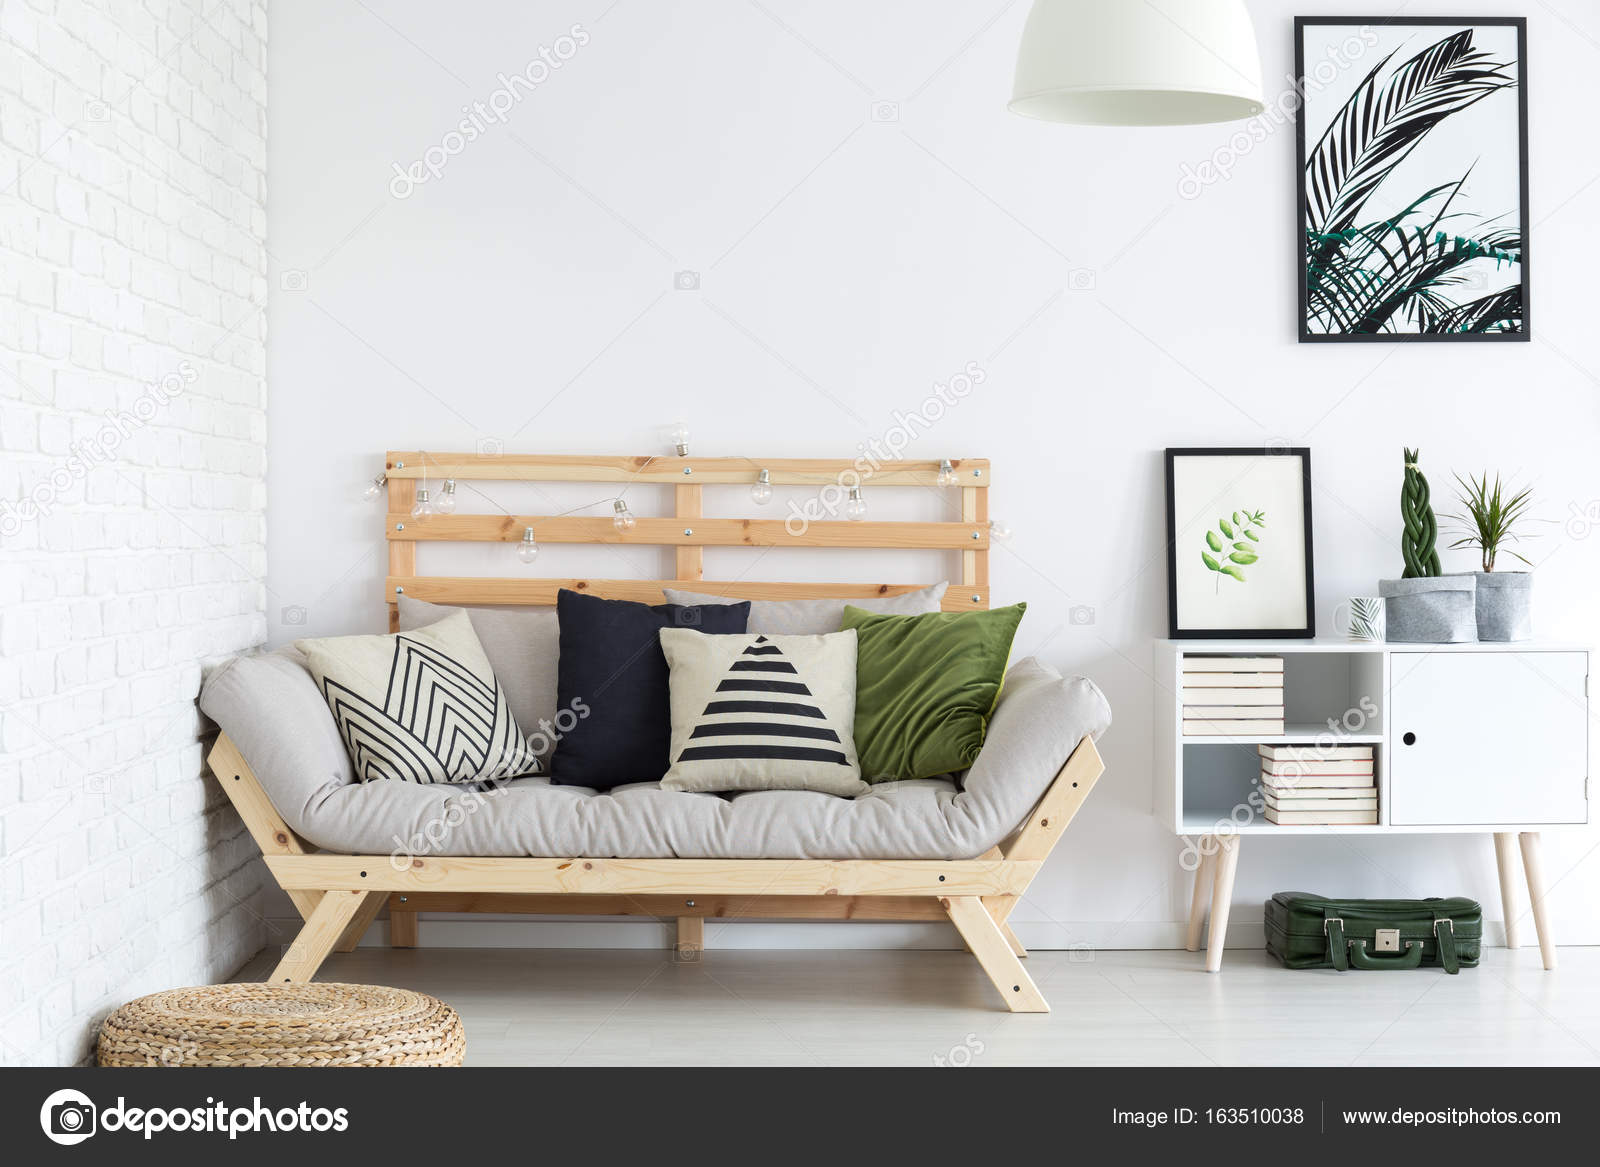 woonkamer decor — Stockfoto © photographee.eu #163510038